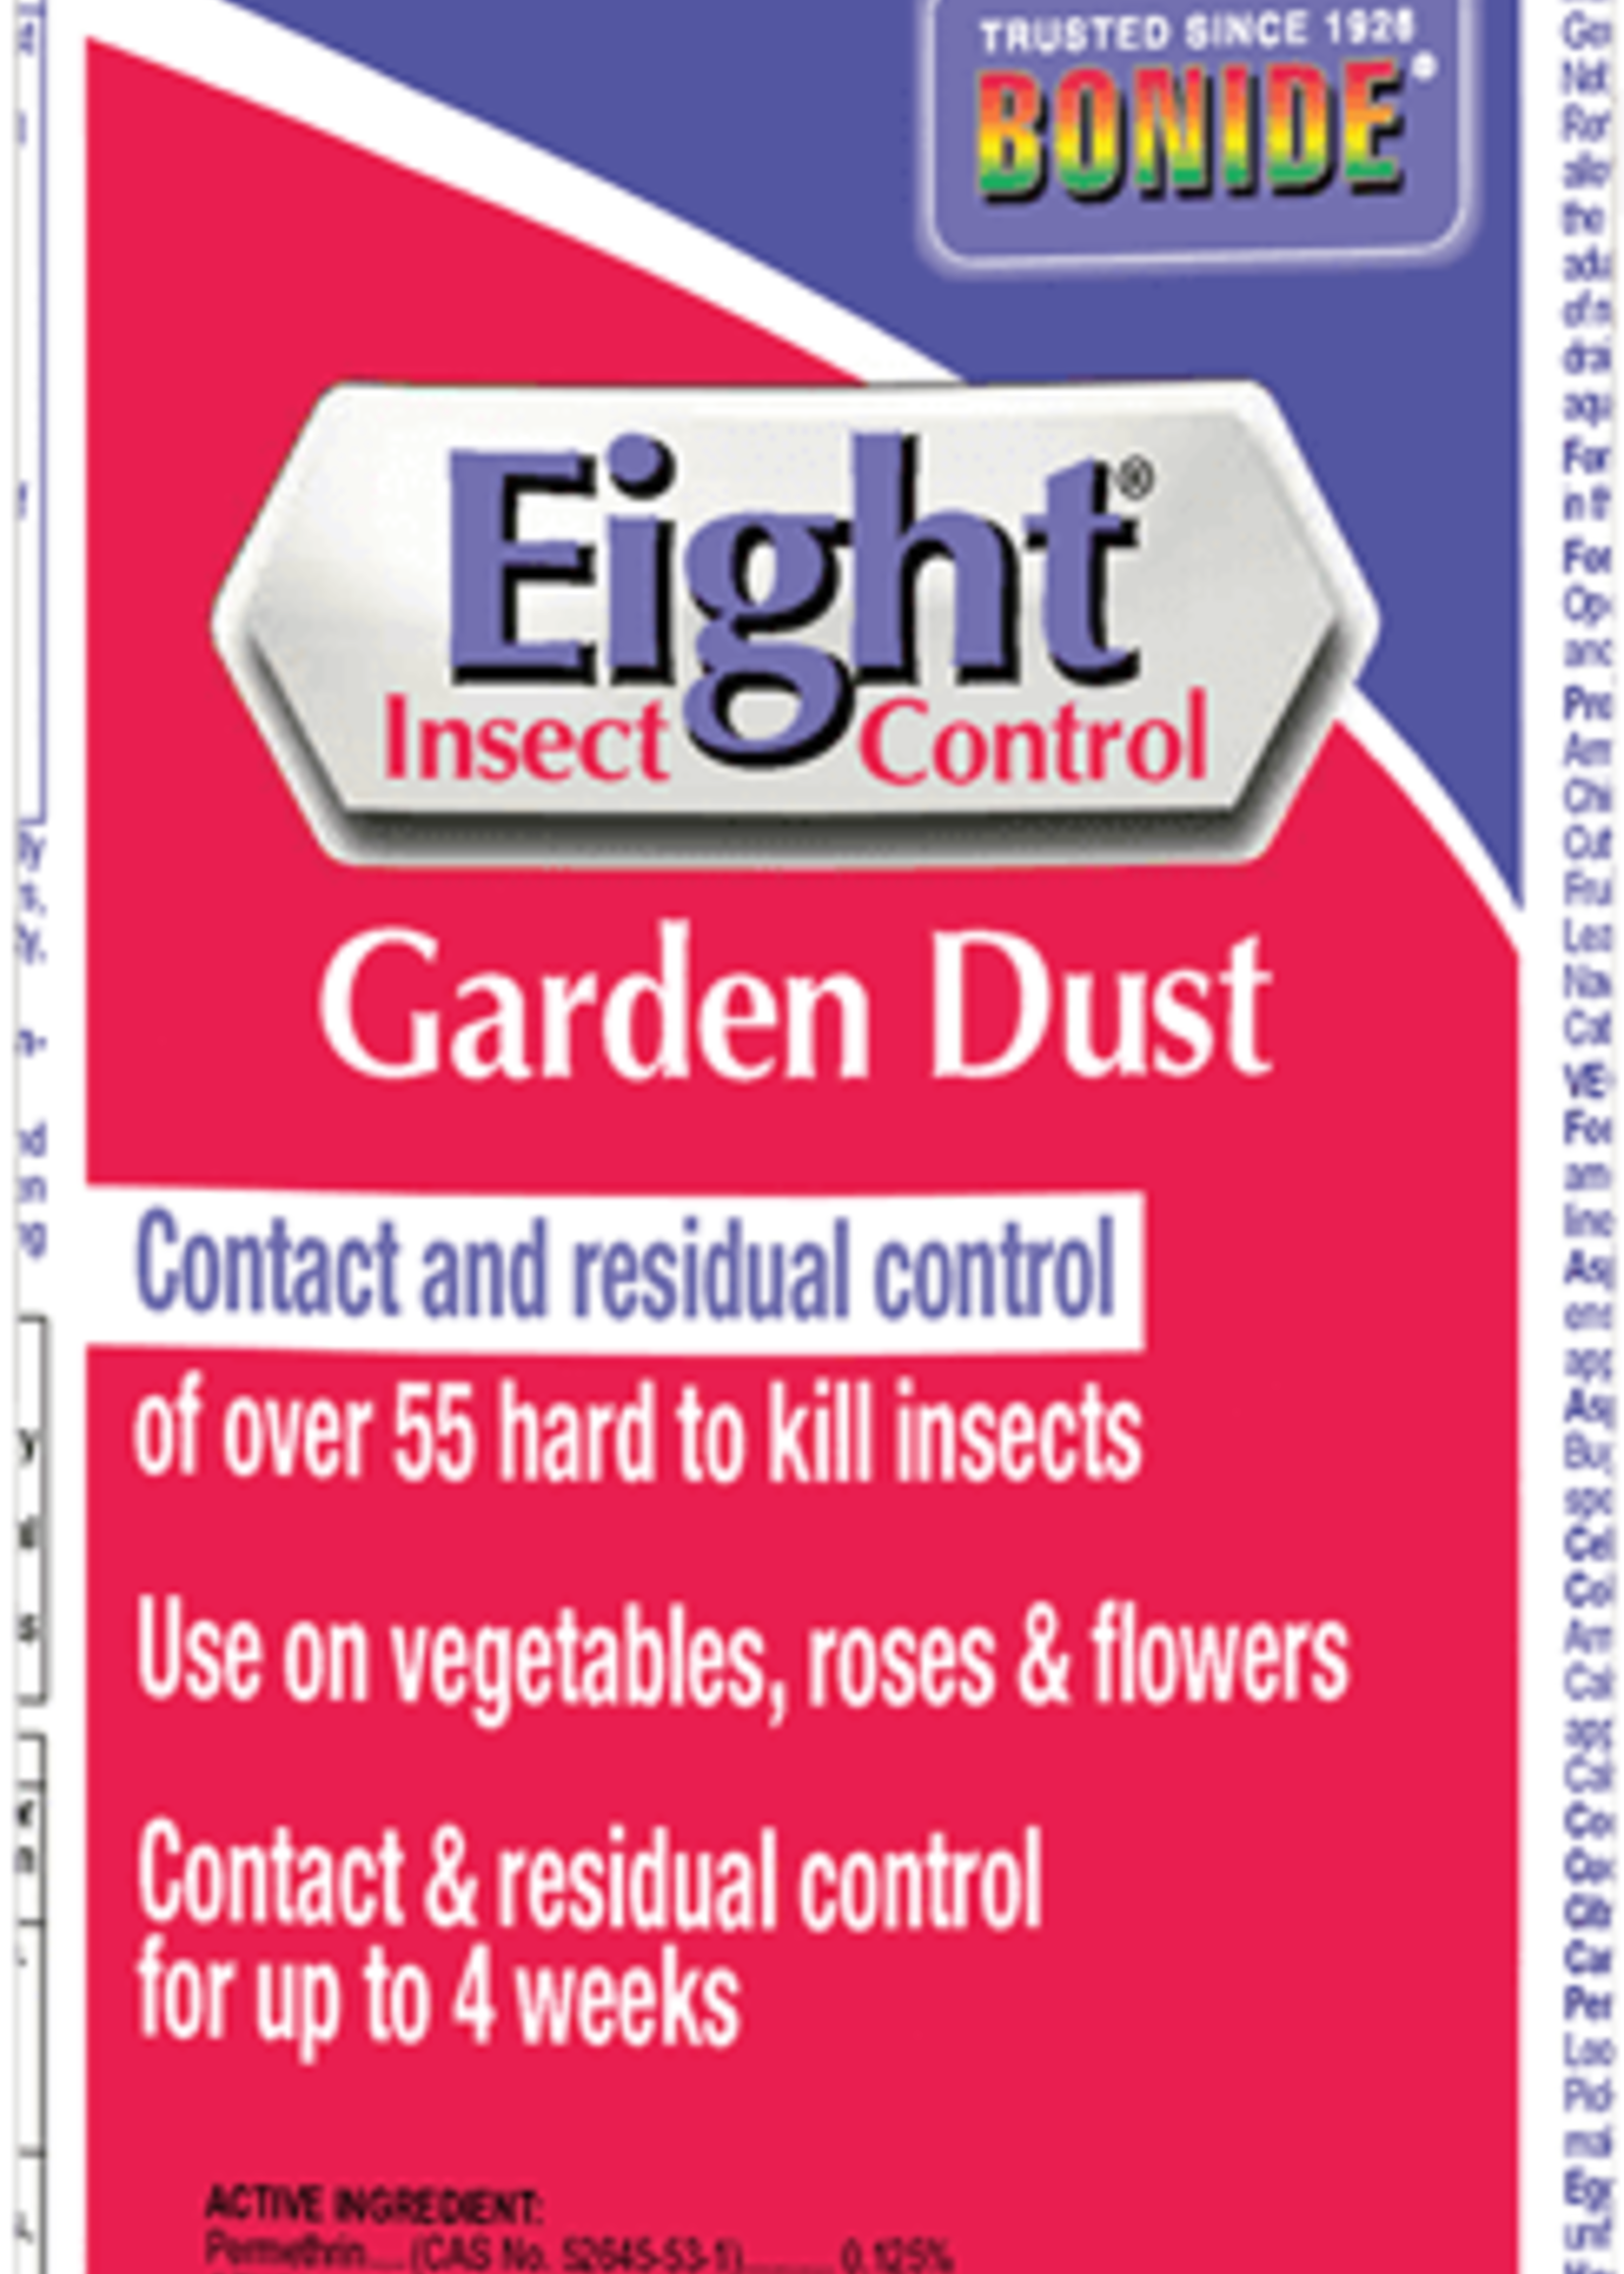 Eight Insect control Garden Dust 10 oz.